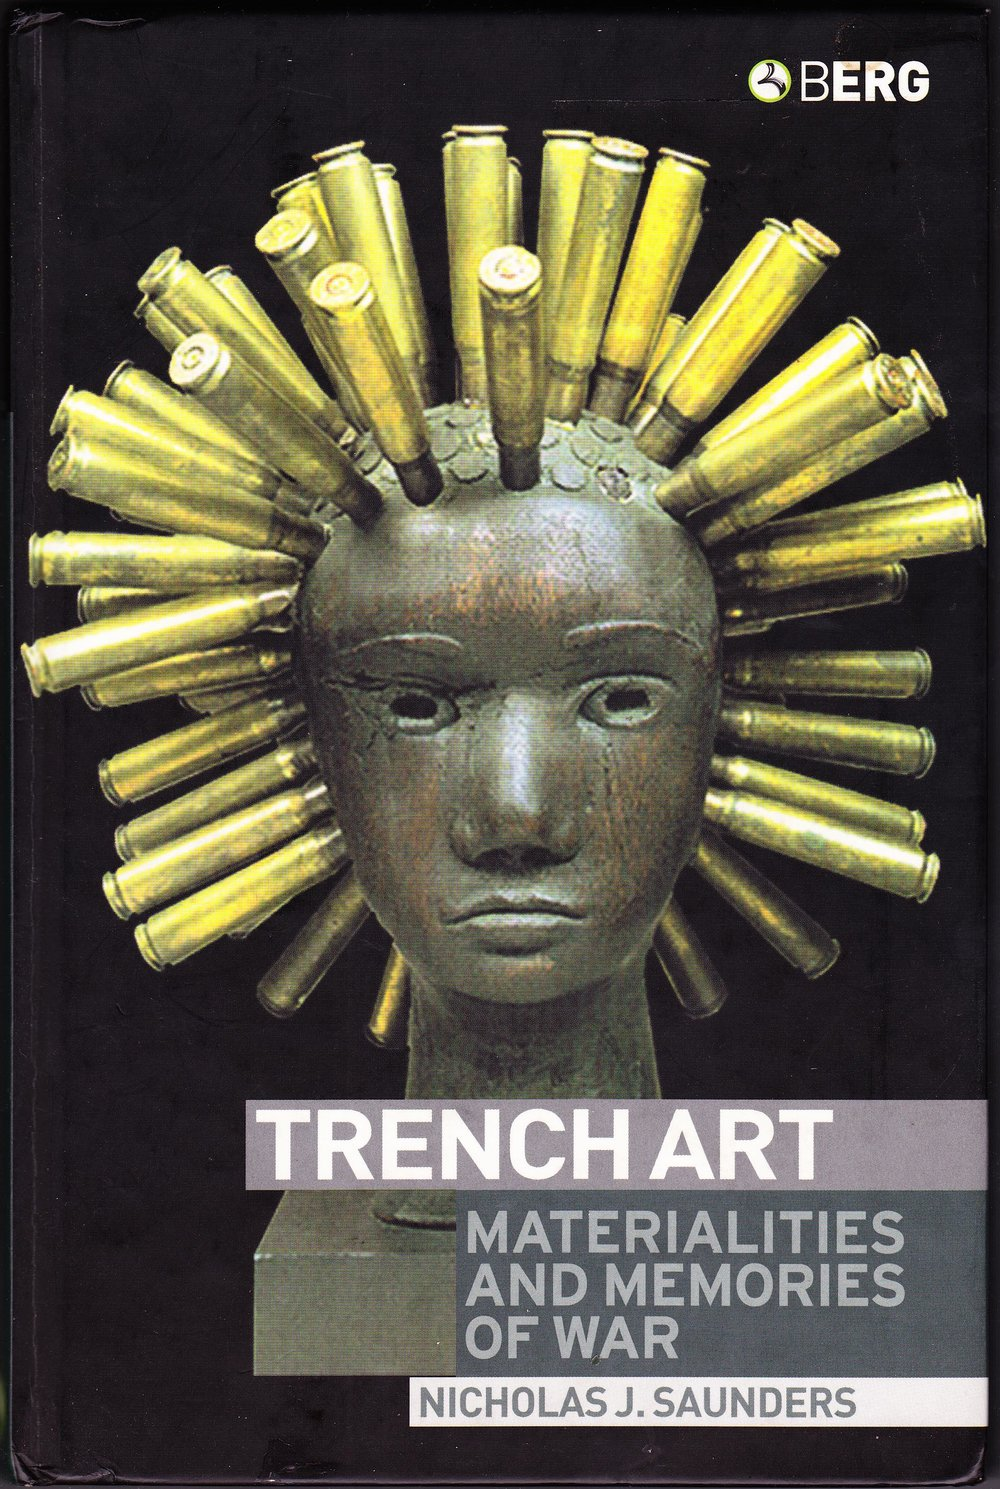 Trench Art Materialities and Memories of War Nicholas J Saunders.jpg